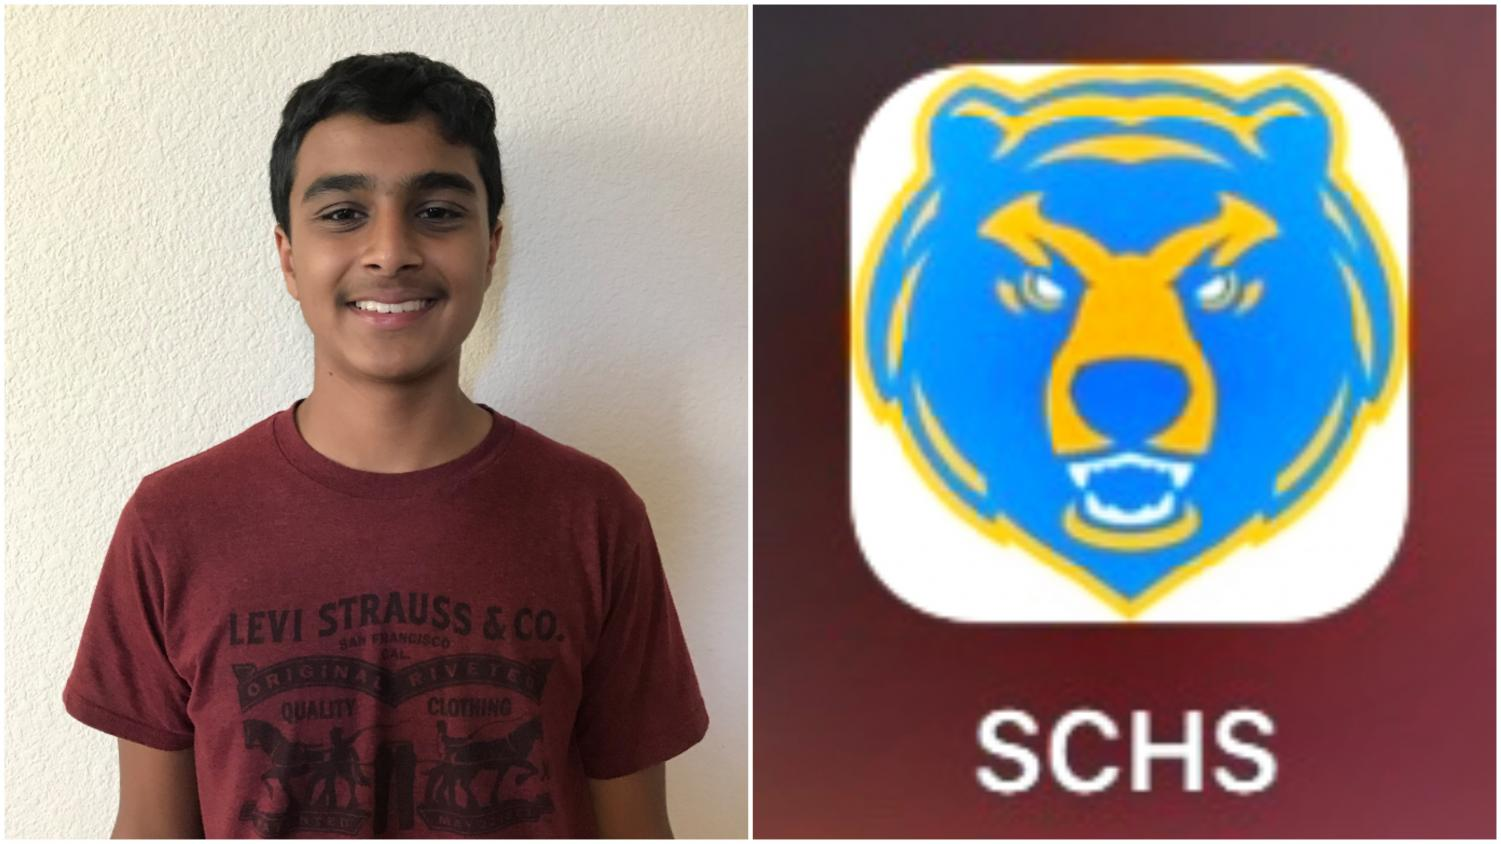 Sophomore Rishab Gupta (left) has been working on the SCHS app (right) since his freshman year.